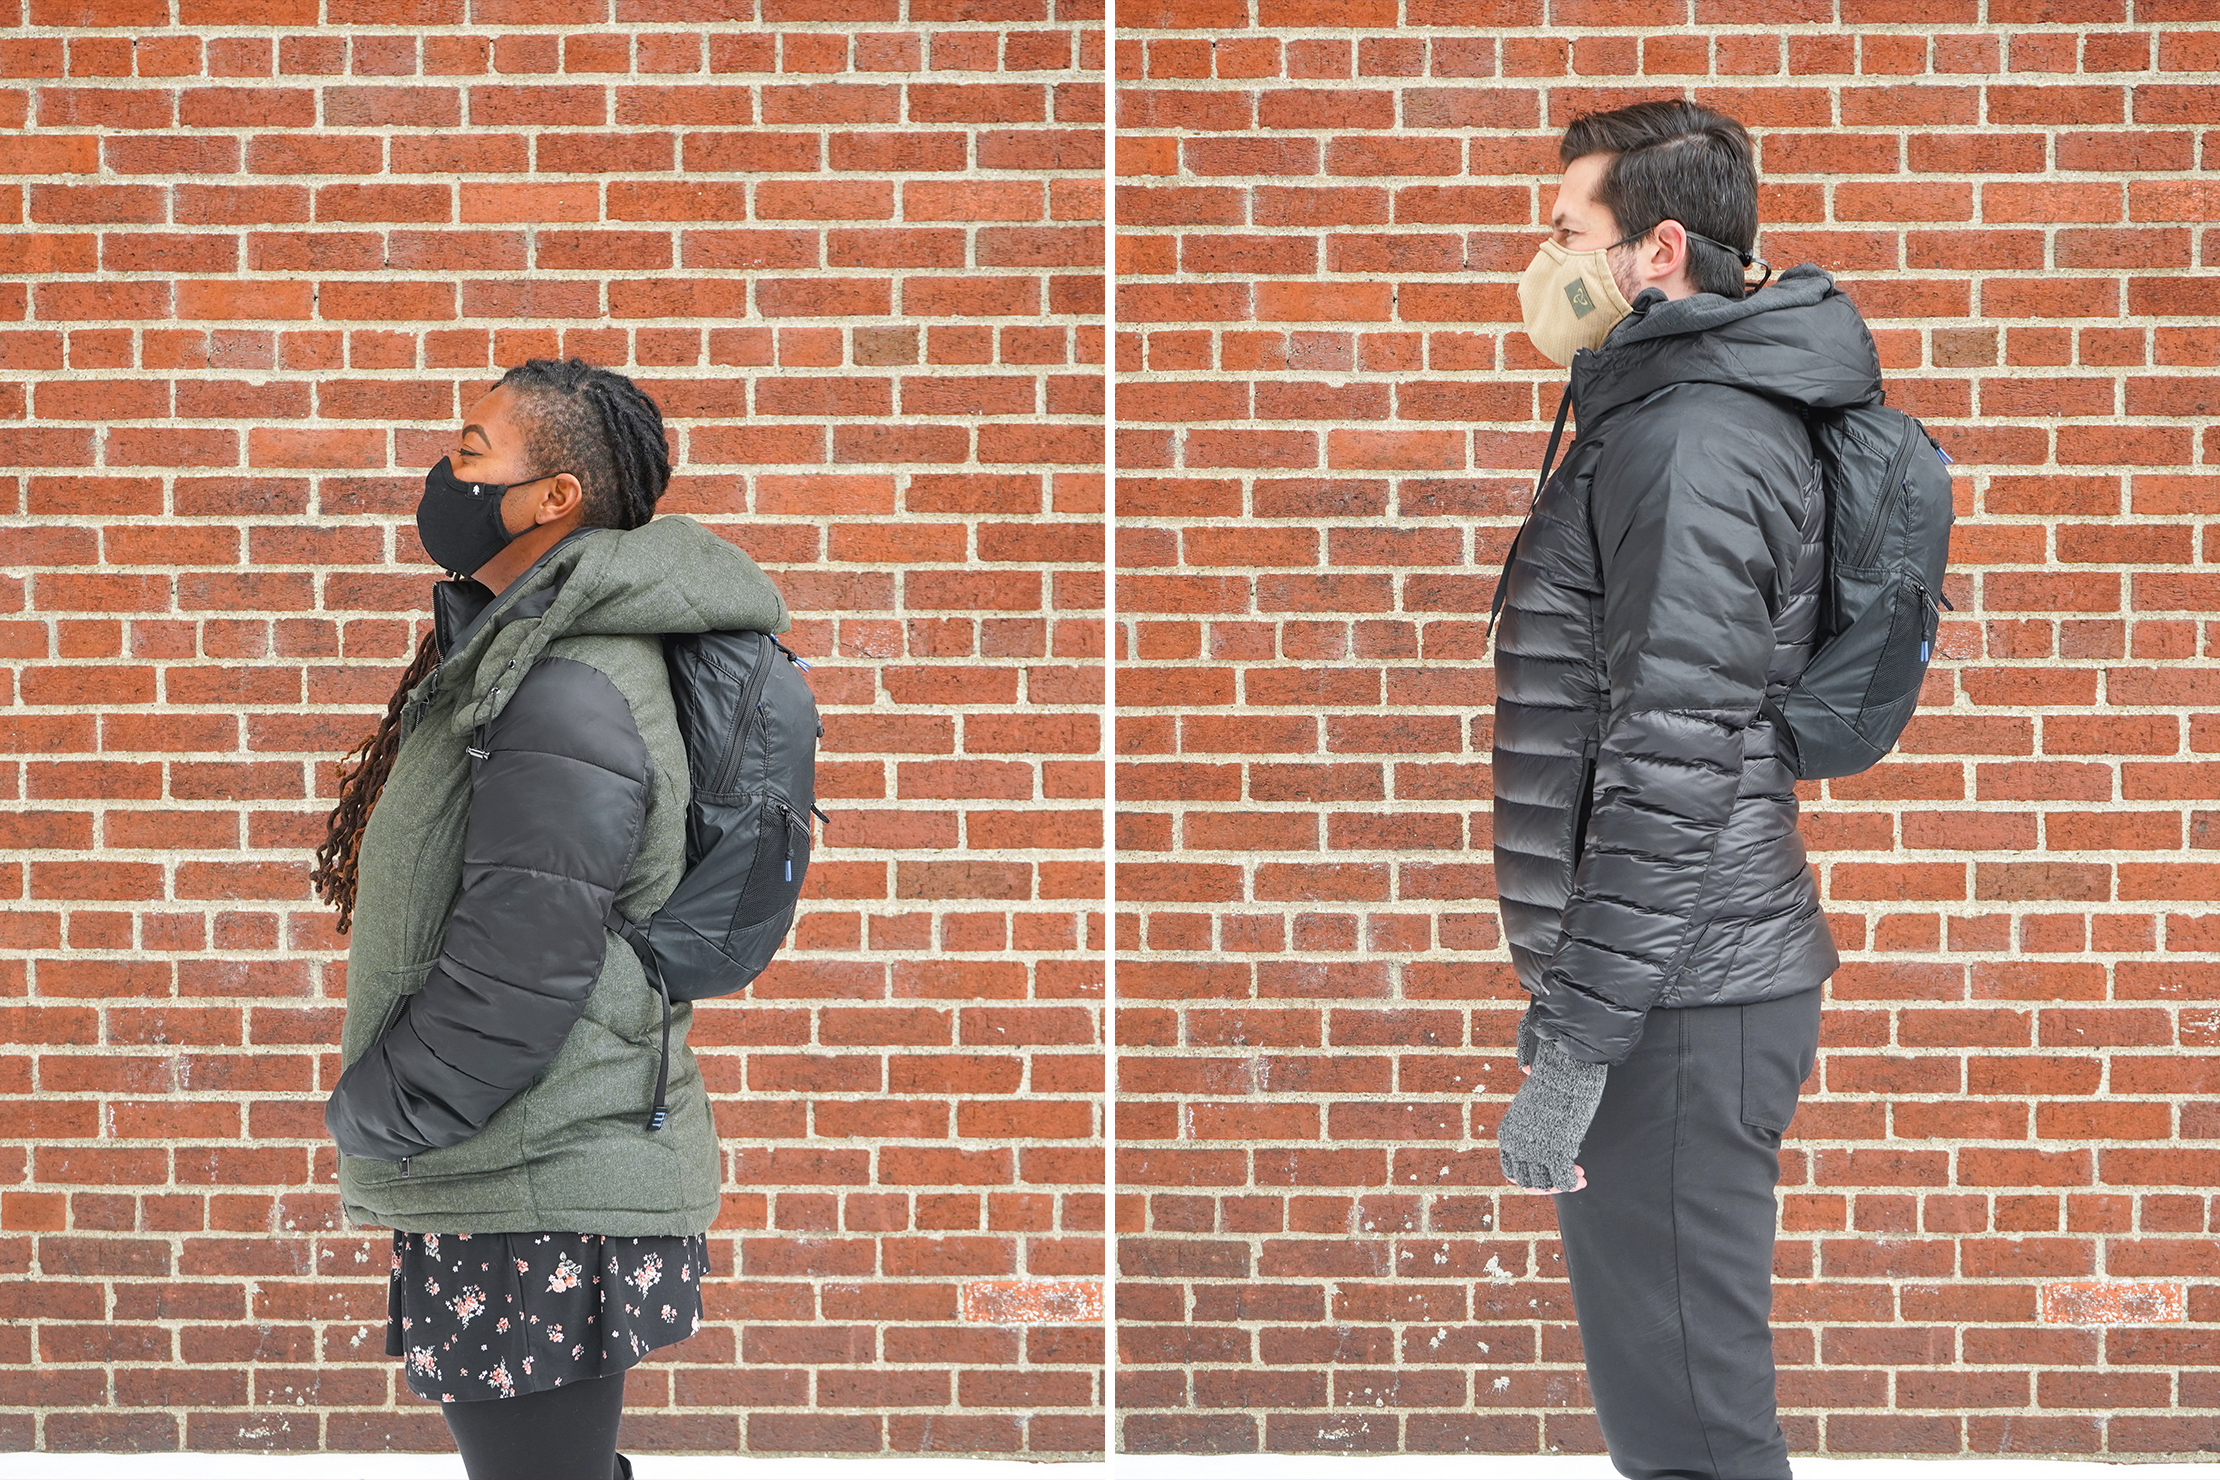 Sandqvist Erland Packable Ziptop Backpack | Male/Female Fit Photos